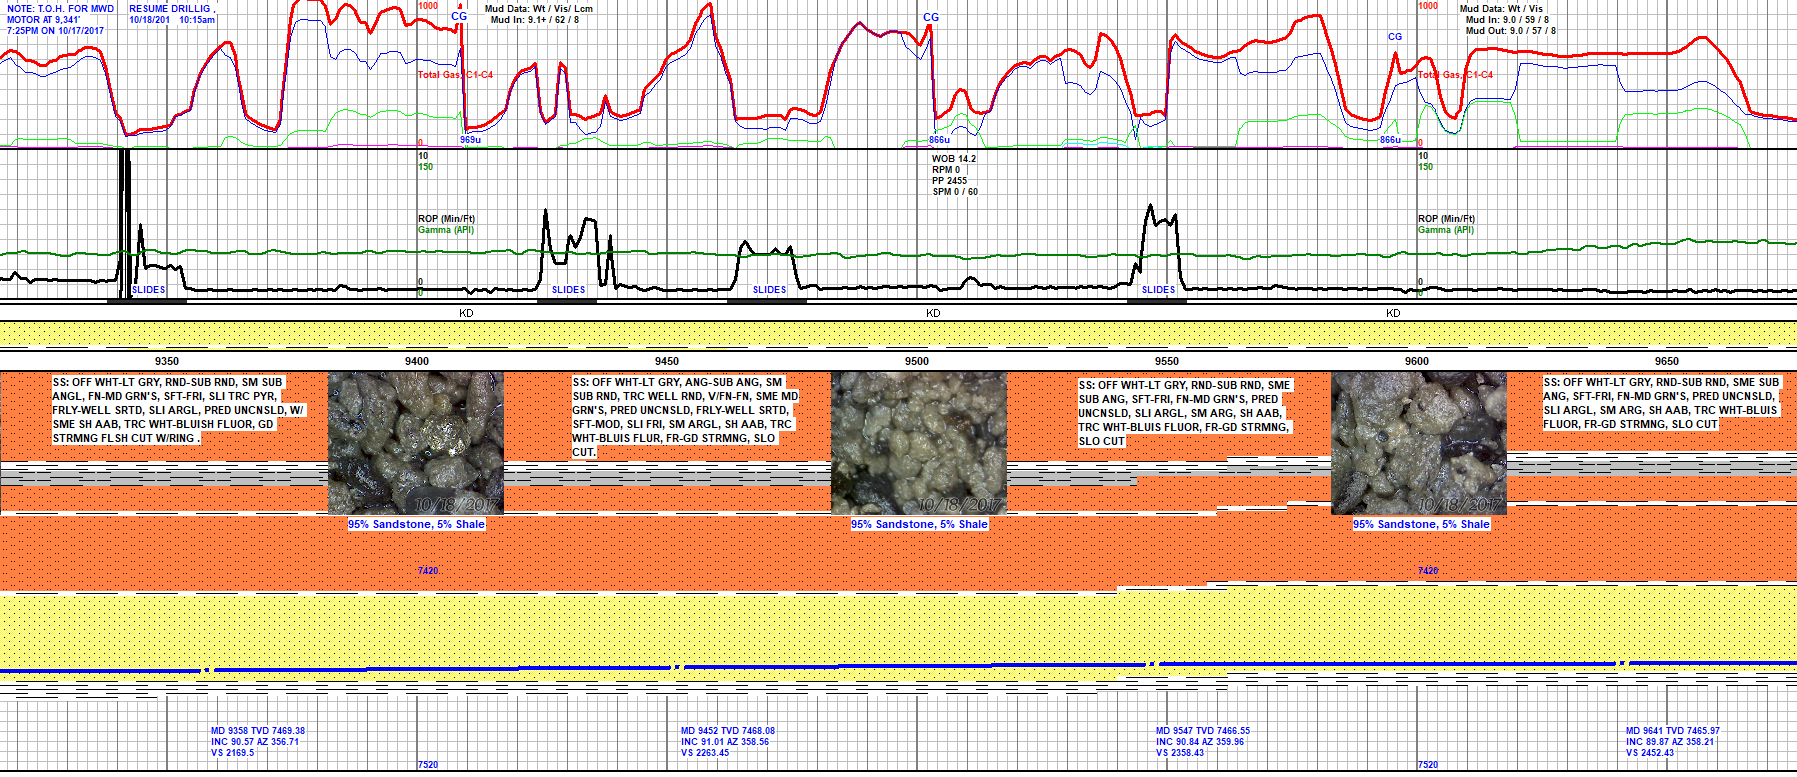 Example Horizontal Mud Log. Shows Total Gas, C1-C5, Gamma, ROP, and Lithology. Well was using OBM.